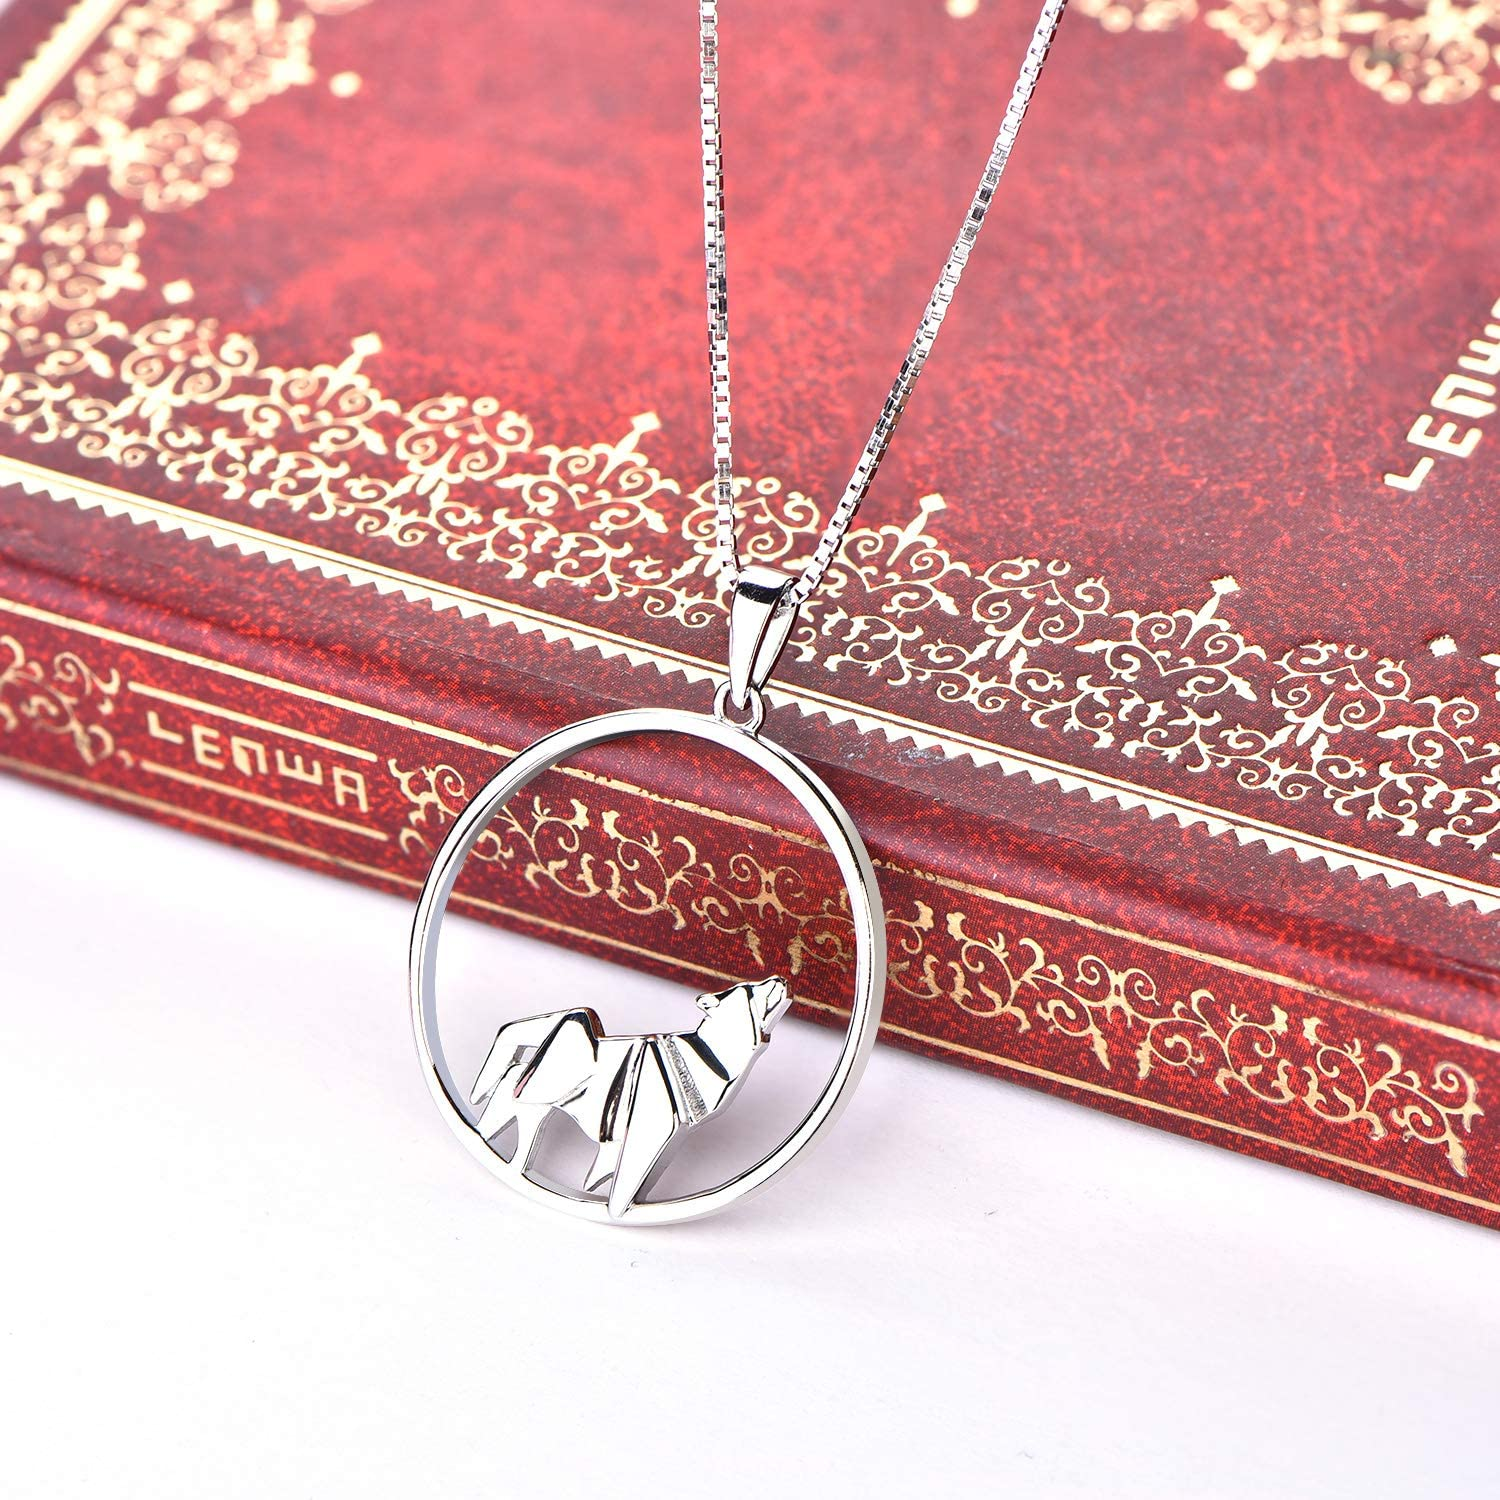 YL Wolf Necklace 925 Sterling Silver Origami Pendant Circle Jewelry Women Gifts